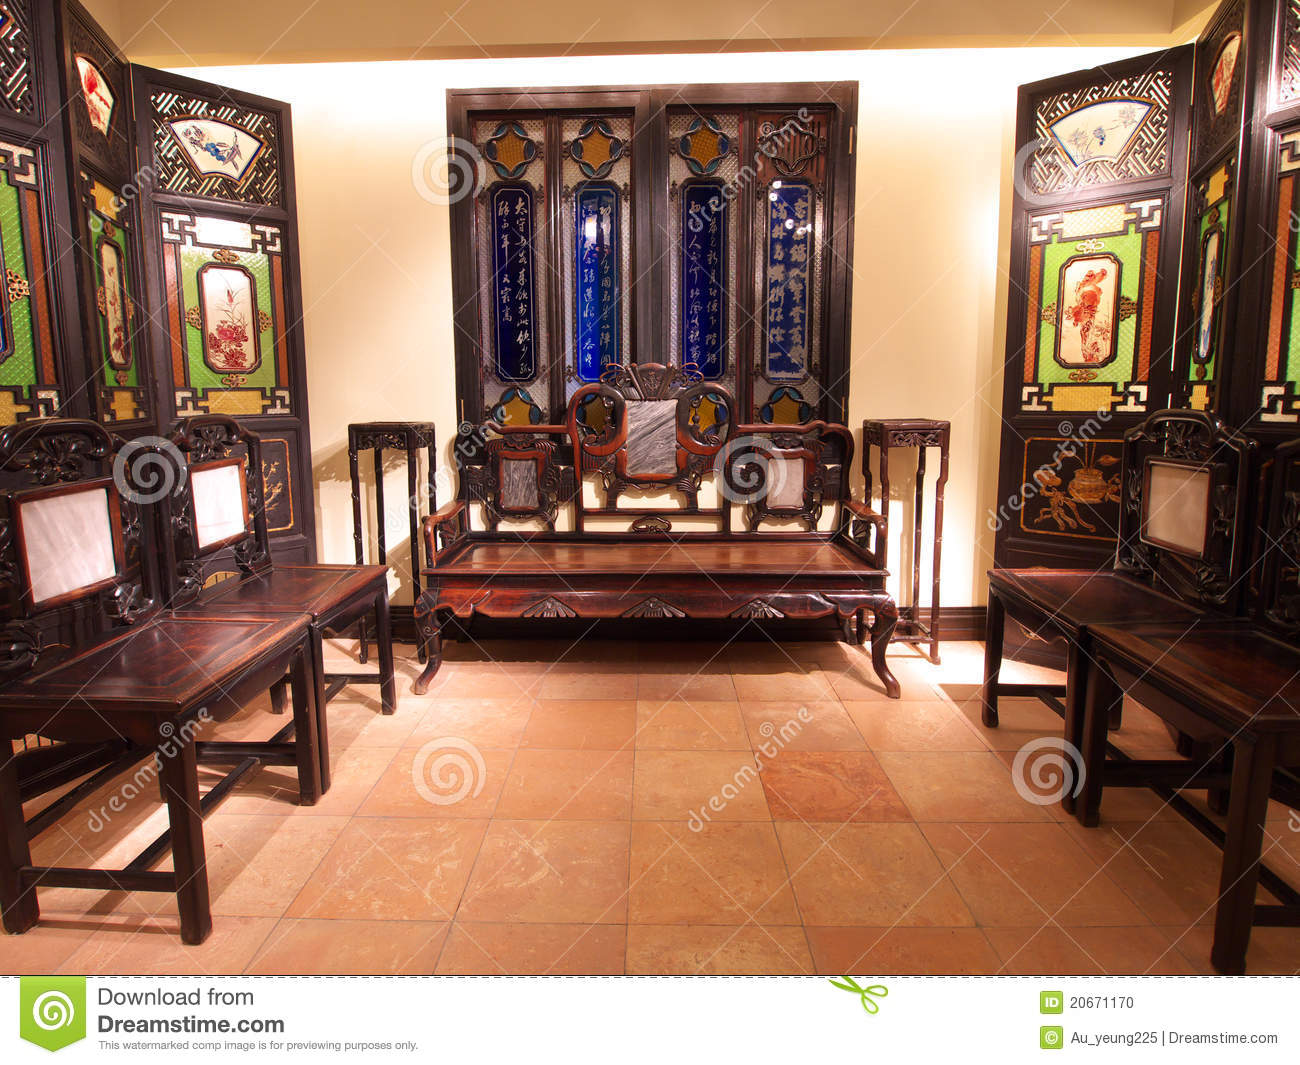 Old chinese living room editorial image. Image of room - 20671170